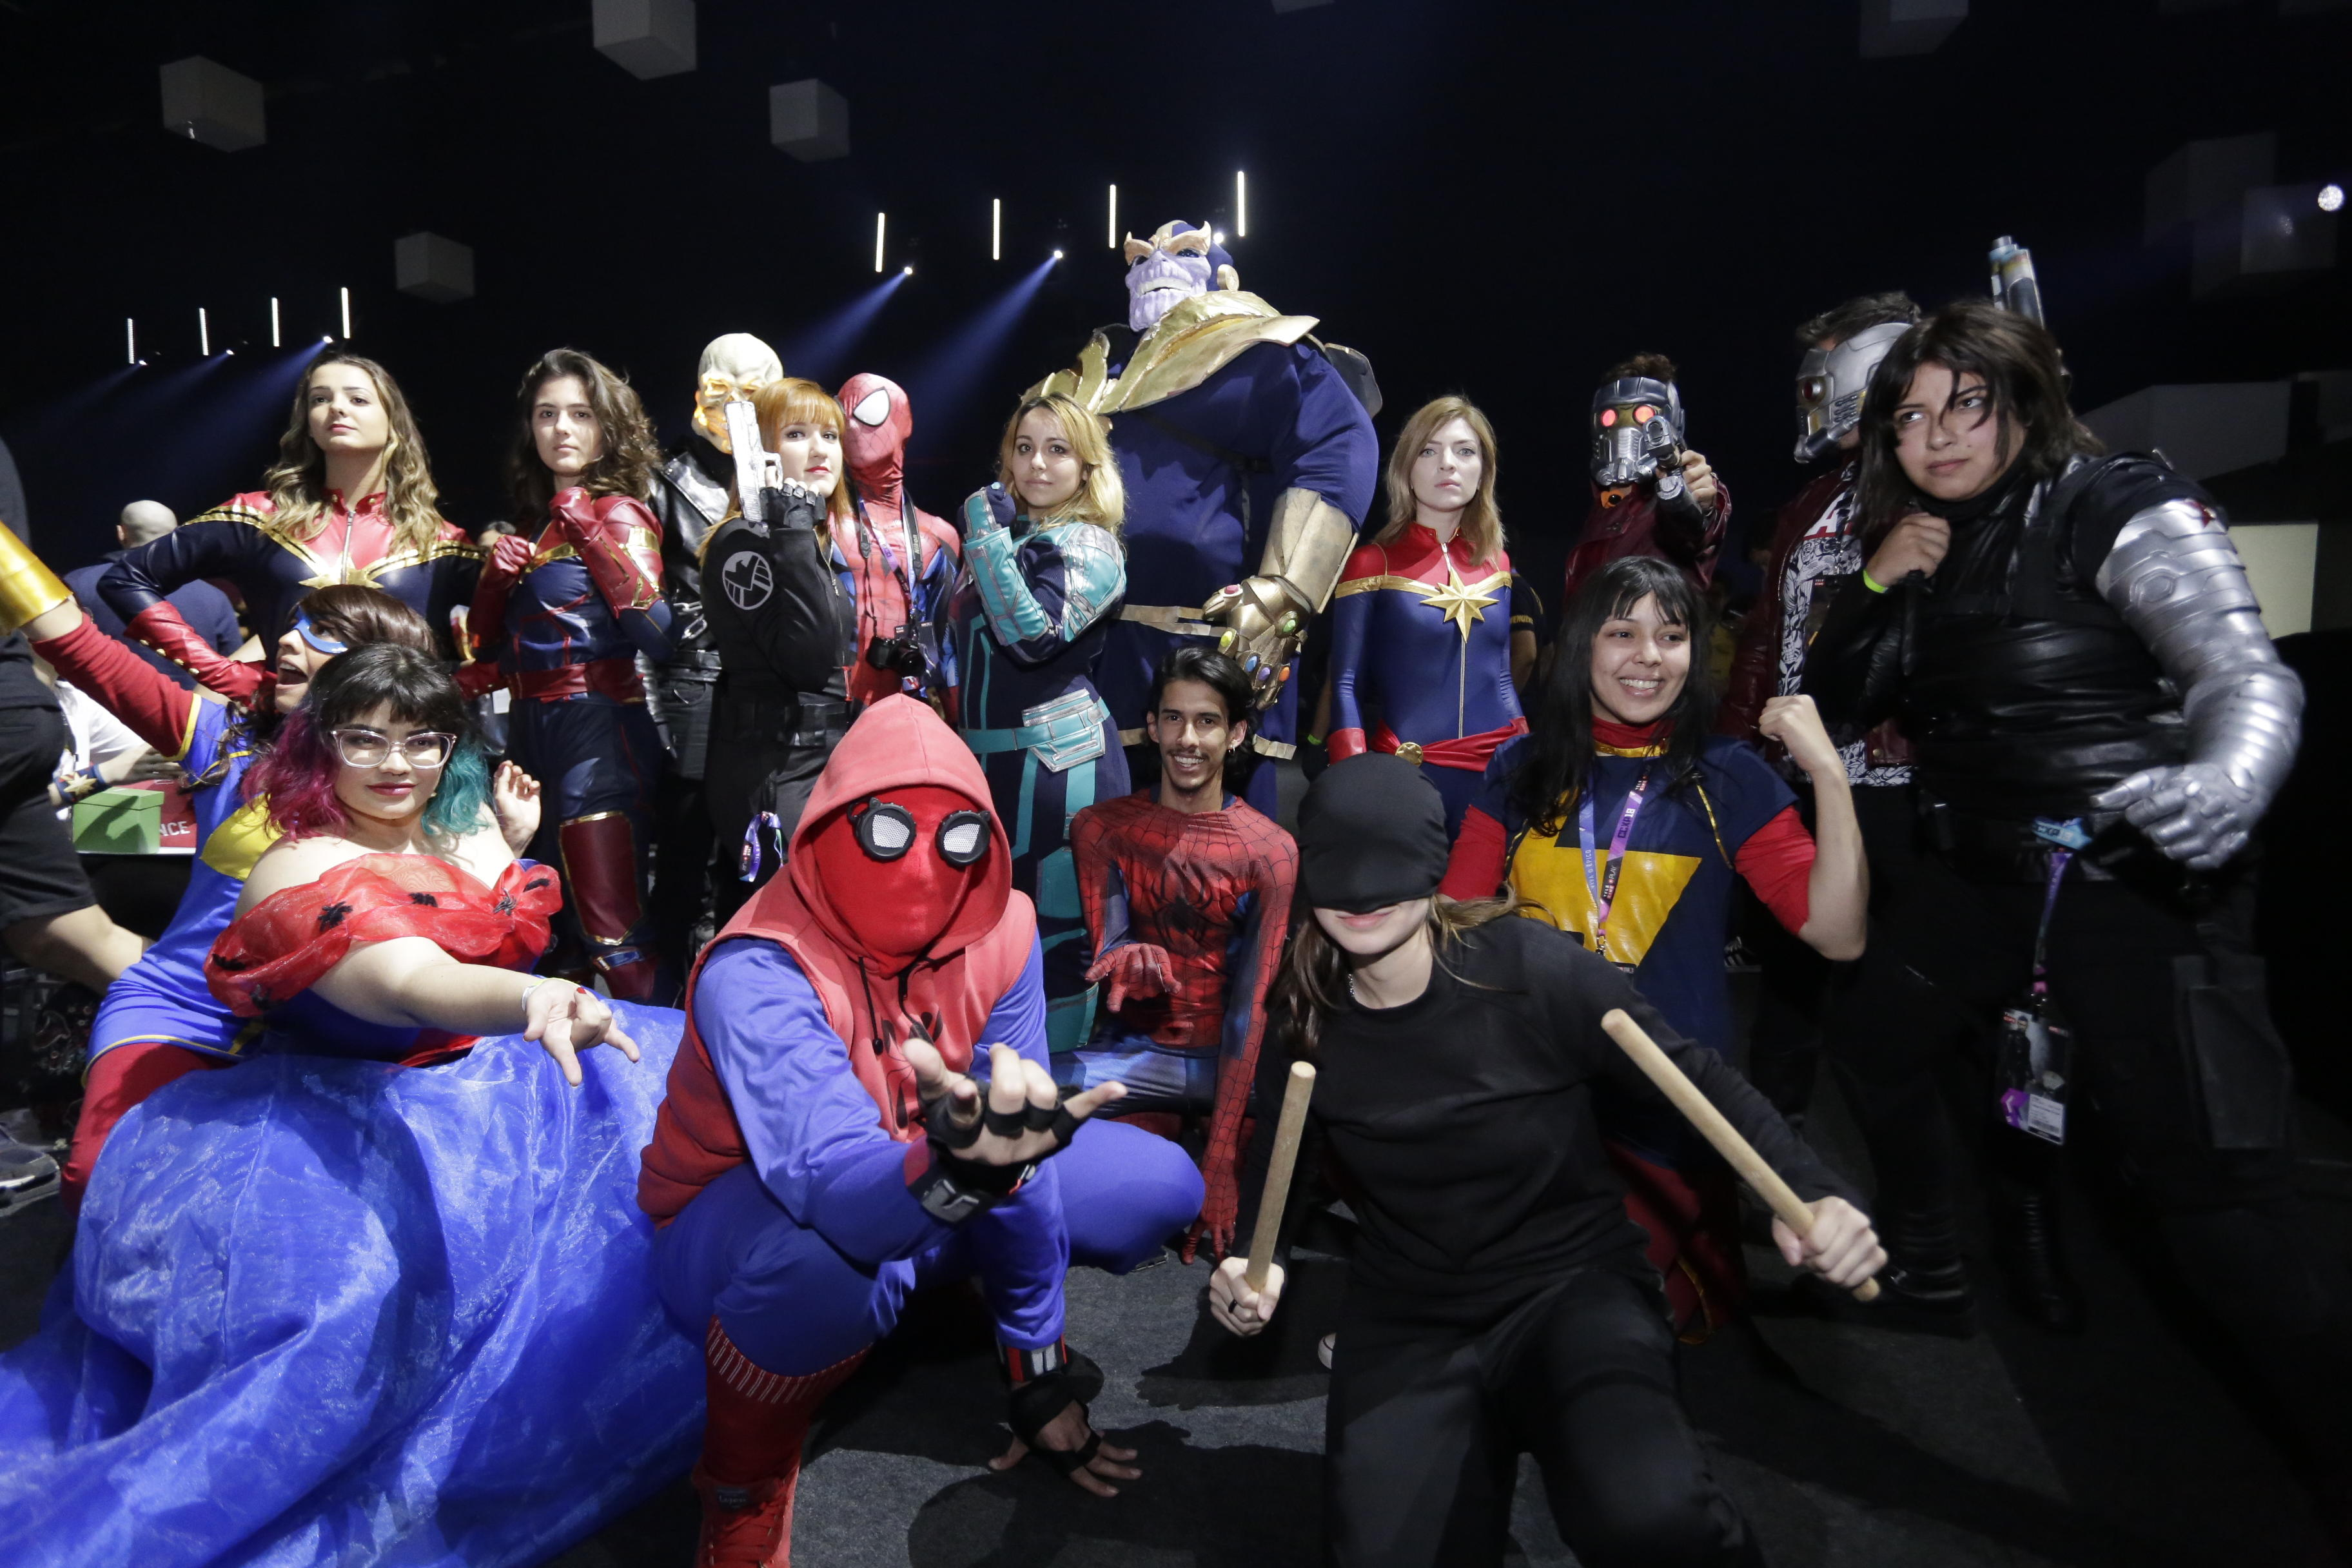 Marvel fans at CCXP18 in São Paulo